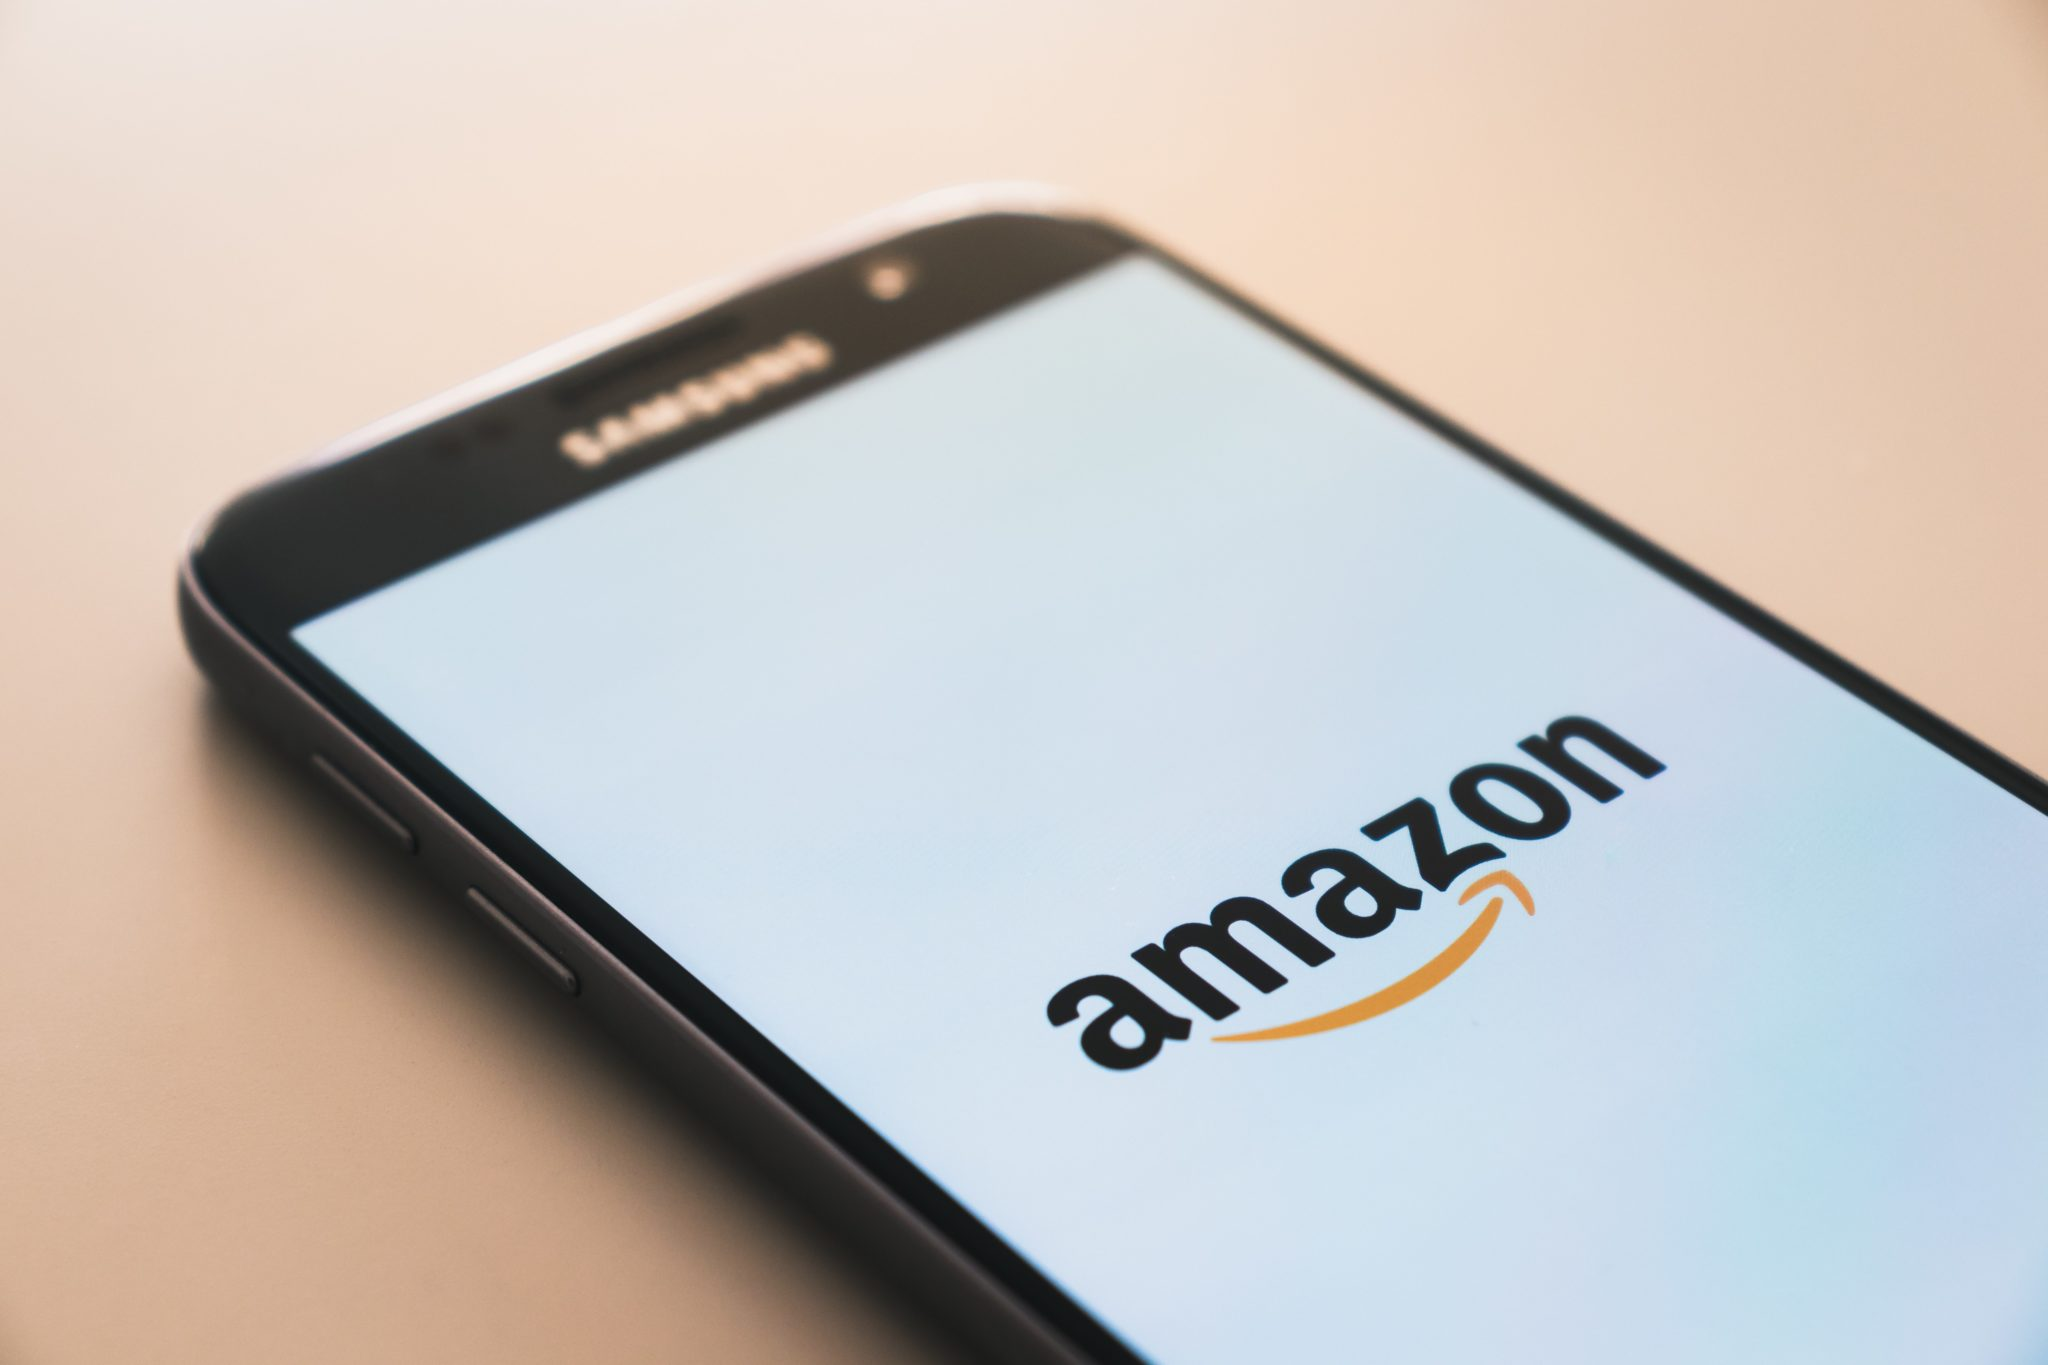 Amazon.ae brings international shopping experiences to users in Bahrain, Kuwait, and Oman